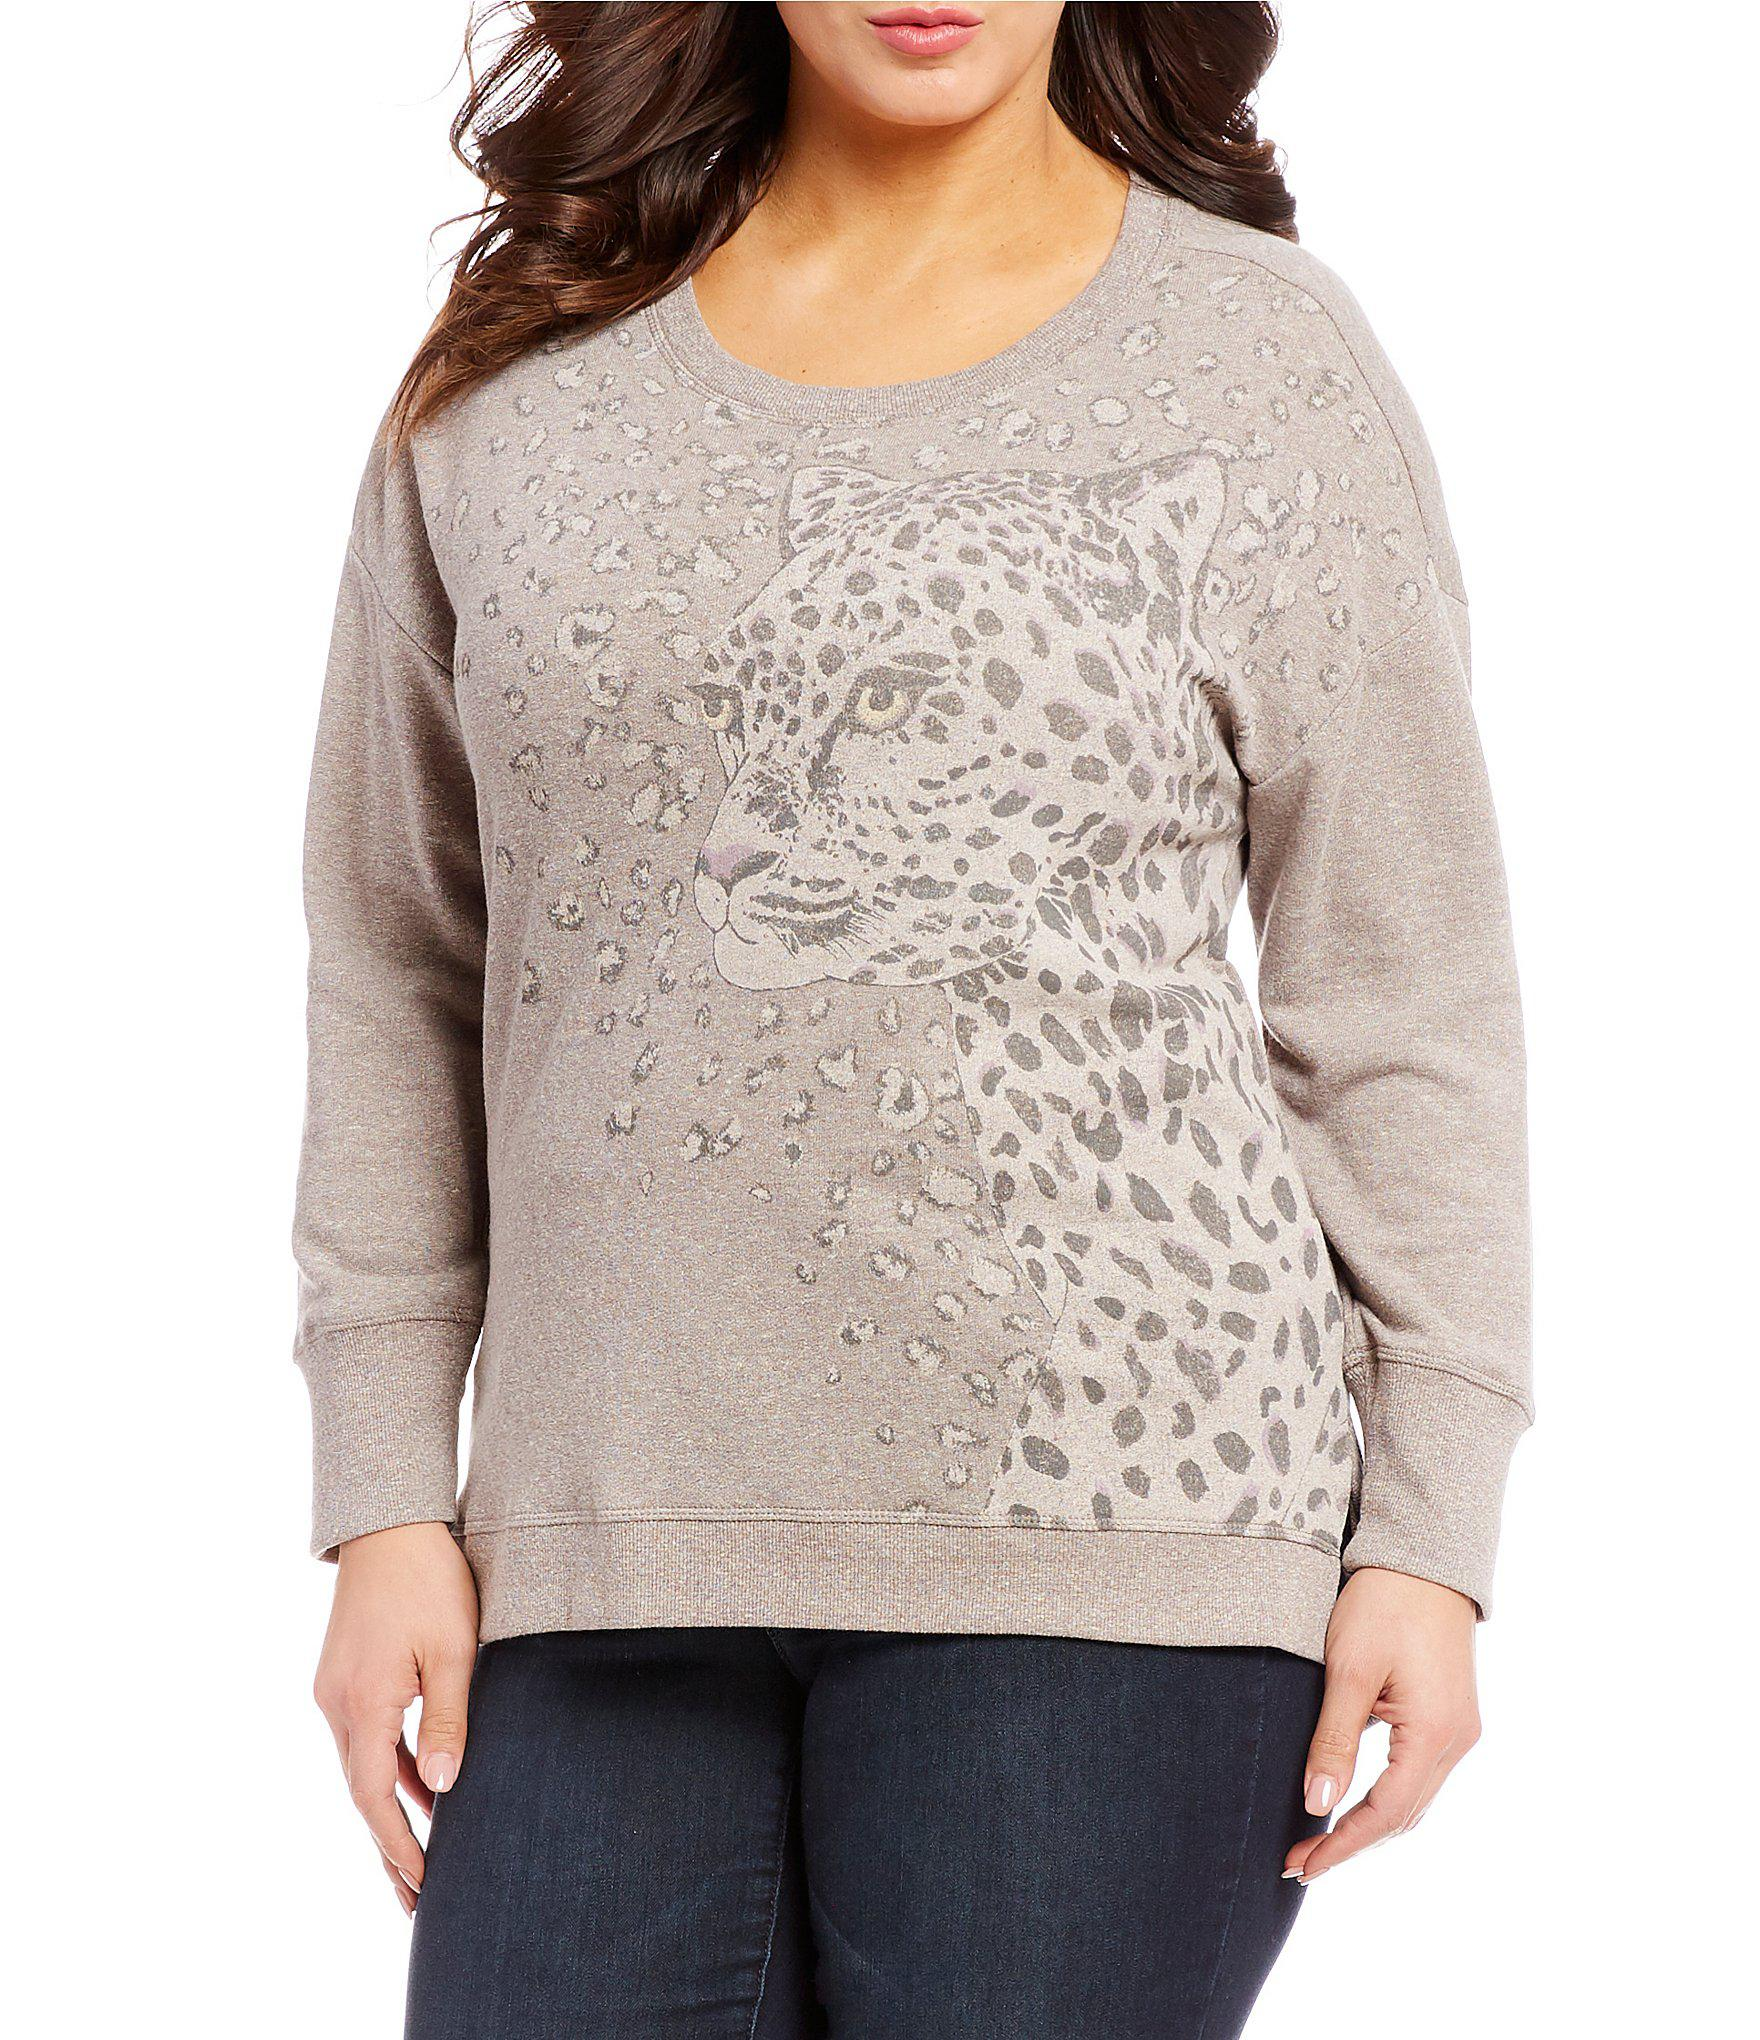 113a7ba1f42 Lyst - Democracy Plus Size Graphic Print Sweatshirt